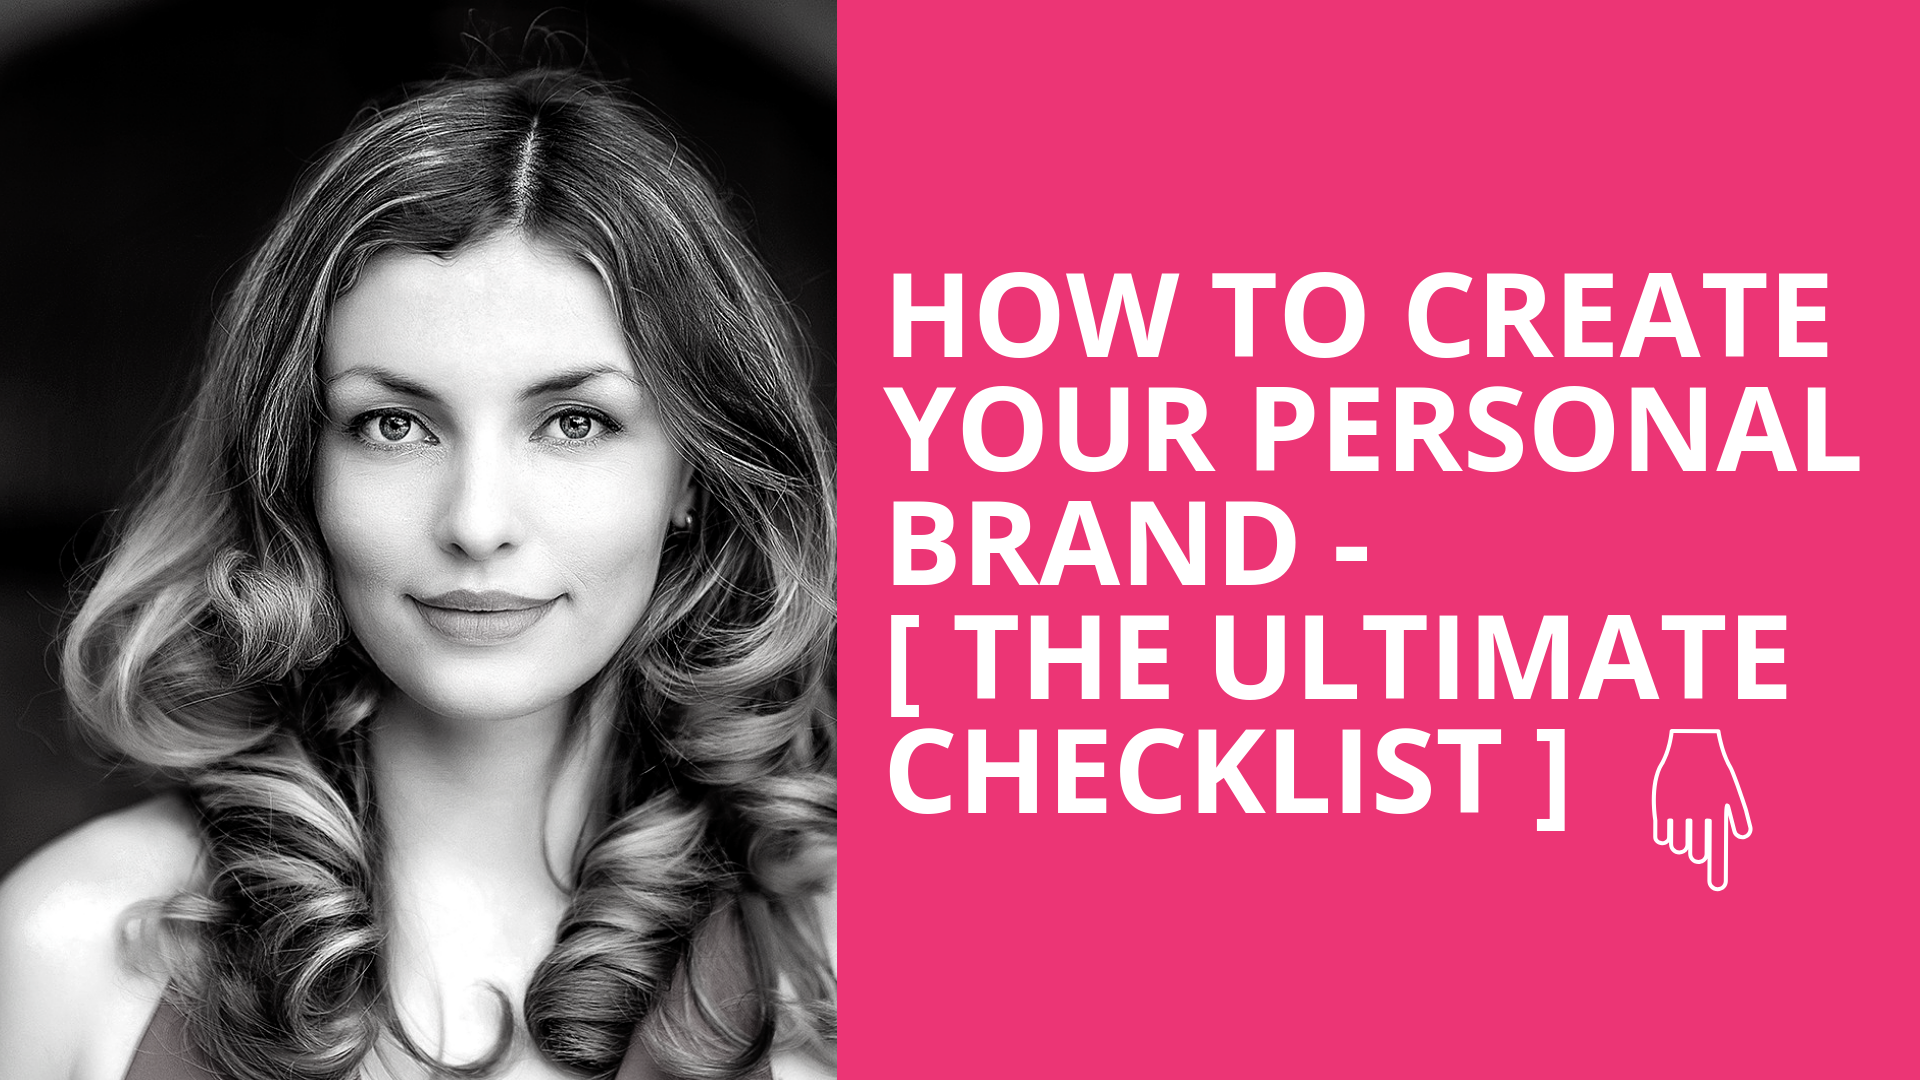 How to create your Personal Brand - The Ultimate Checklist